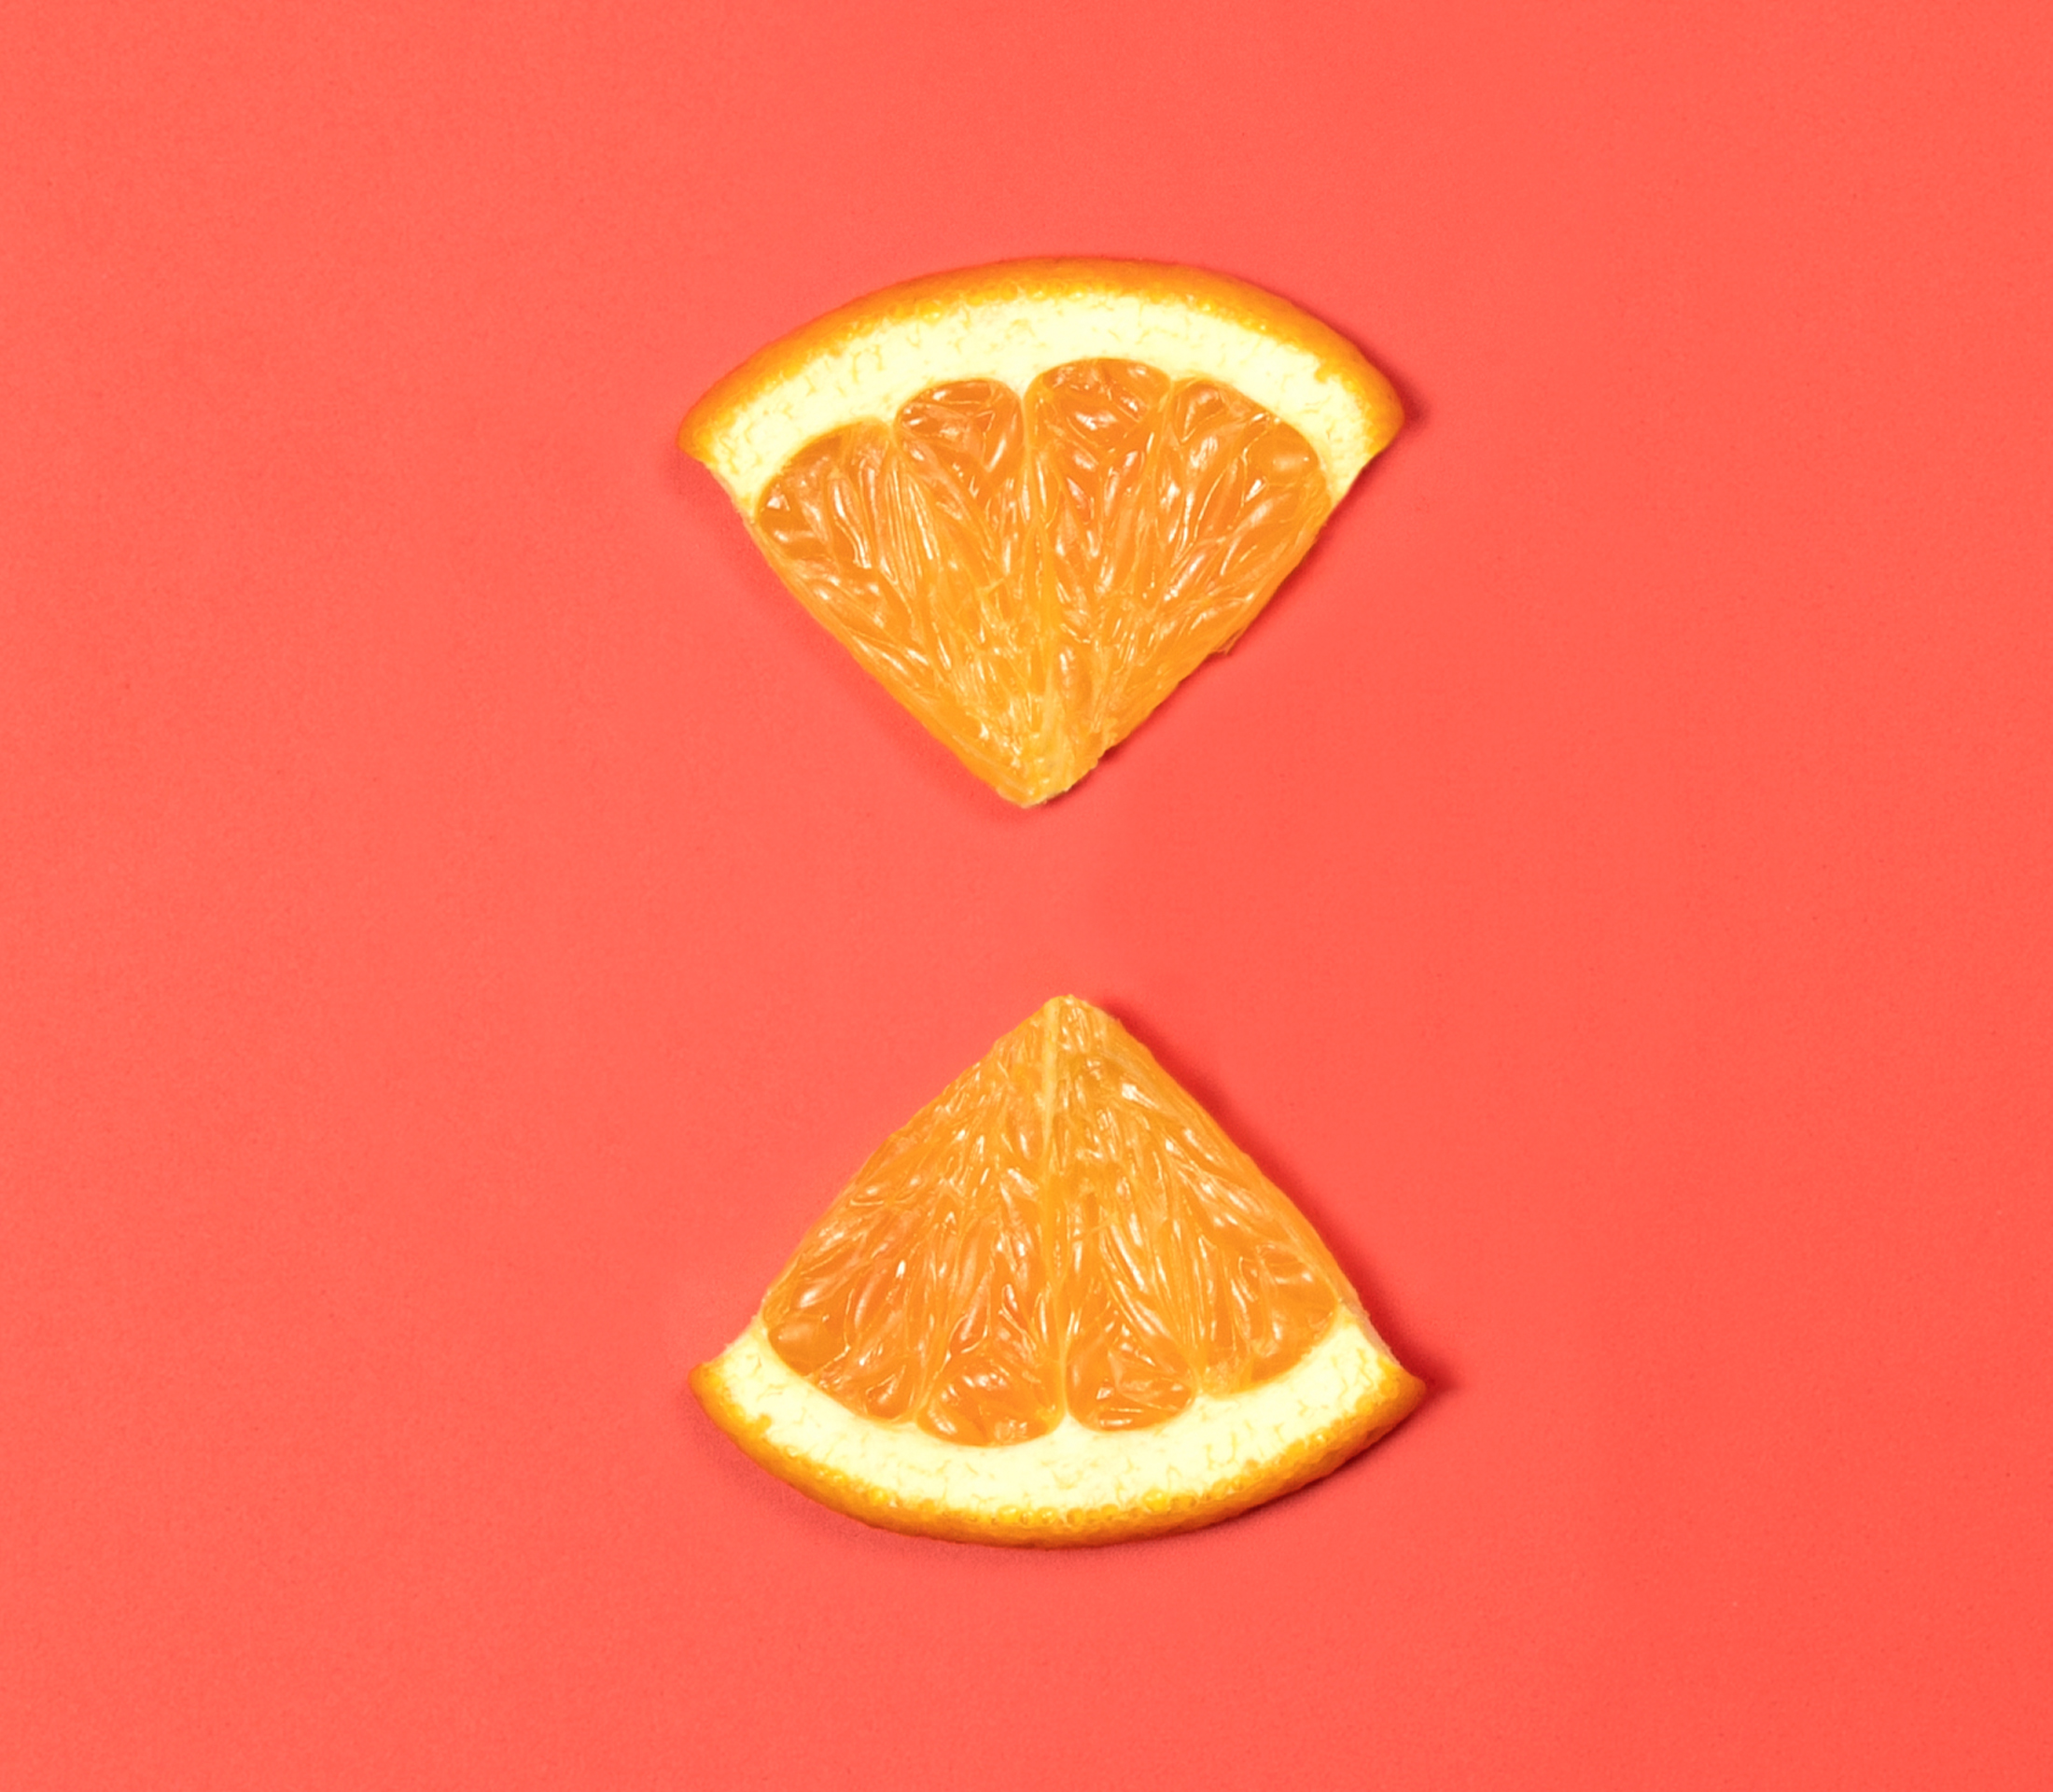 - Vitamin C is one of the most researched ingredients with good reason: it helps to increase collagen production, which translates into firmer skin for yoU.